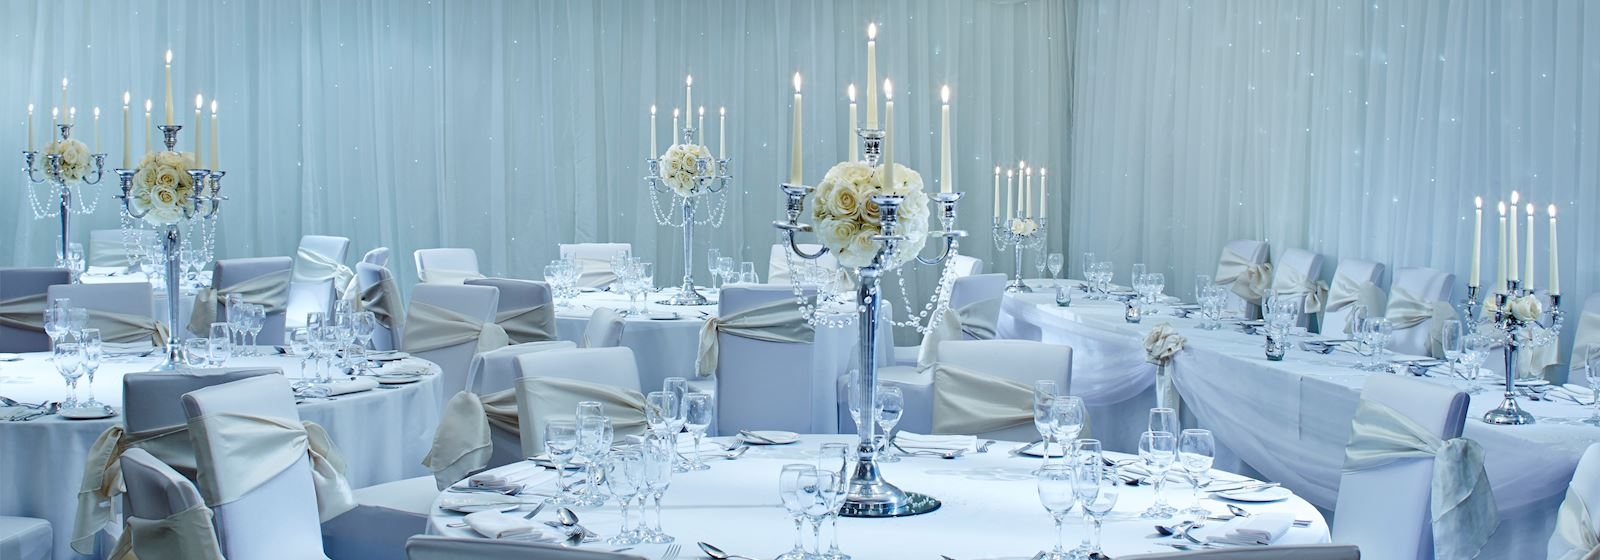 wedding party spaces liverpool